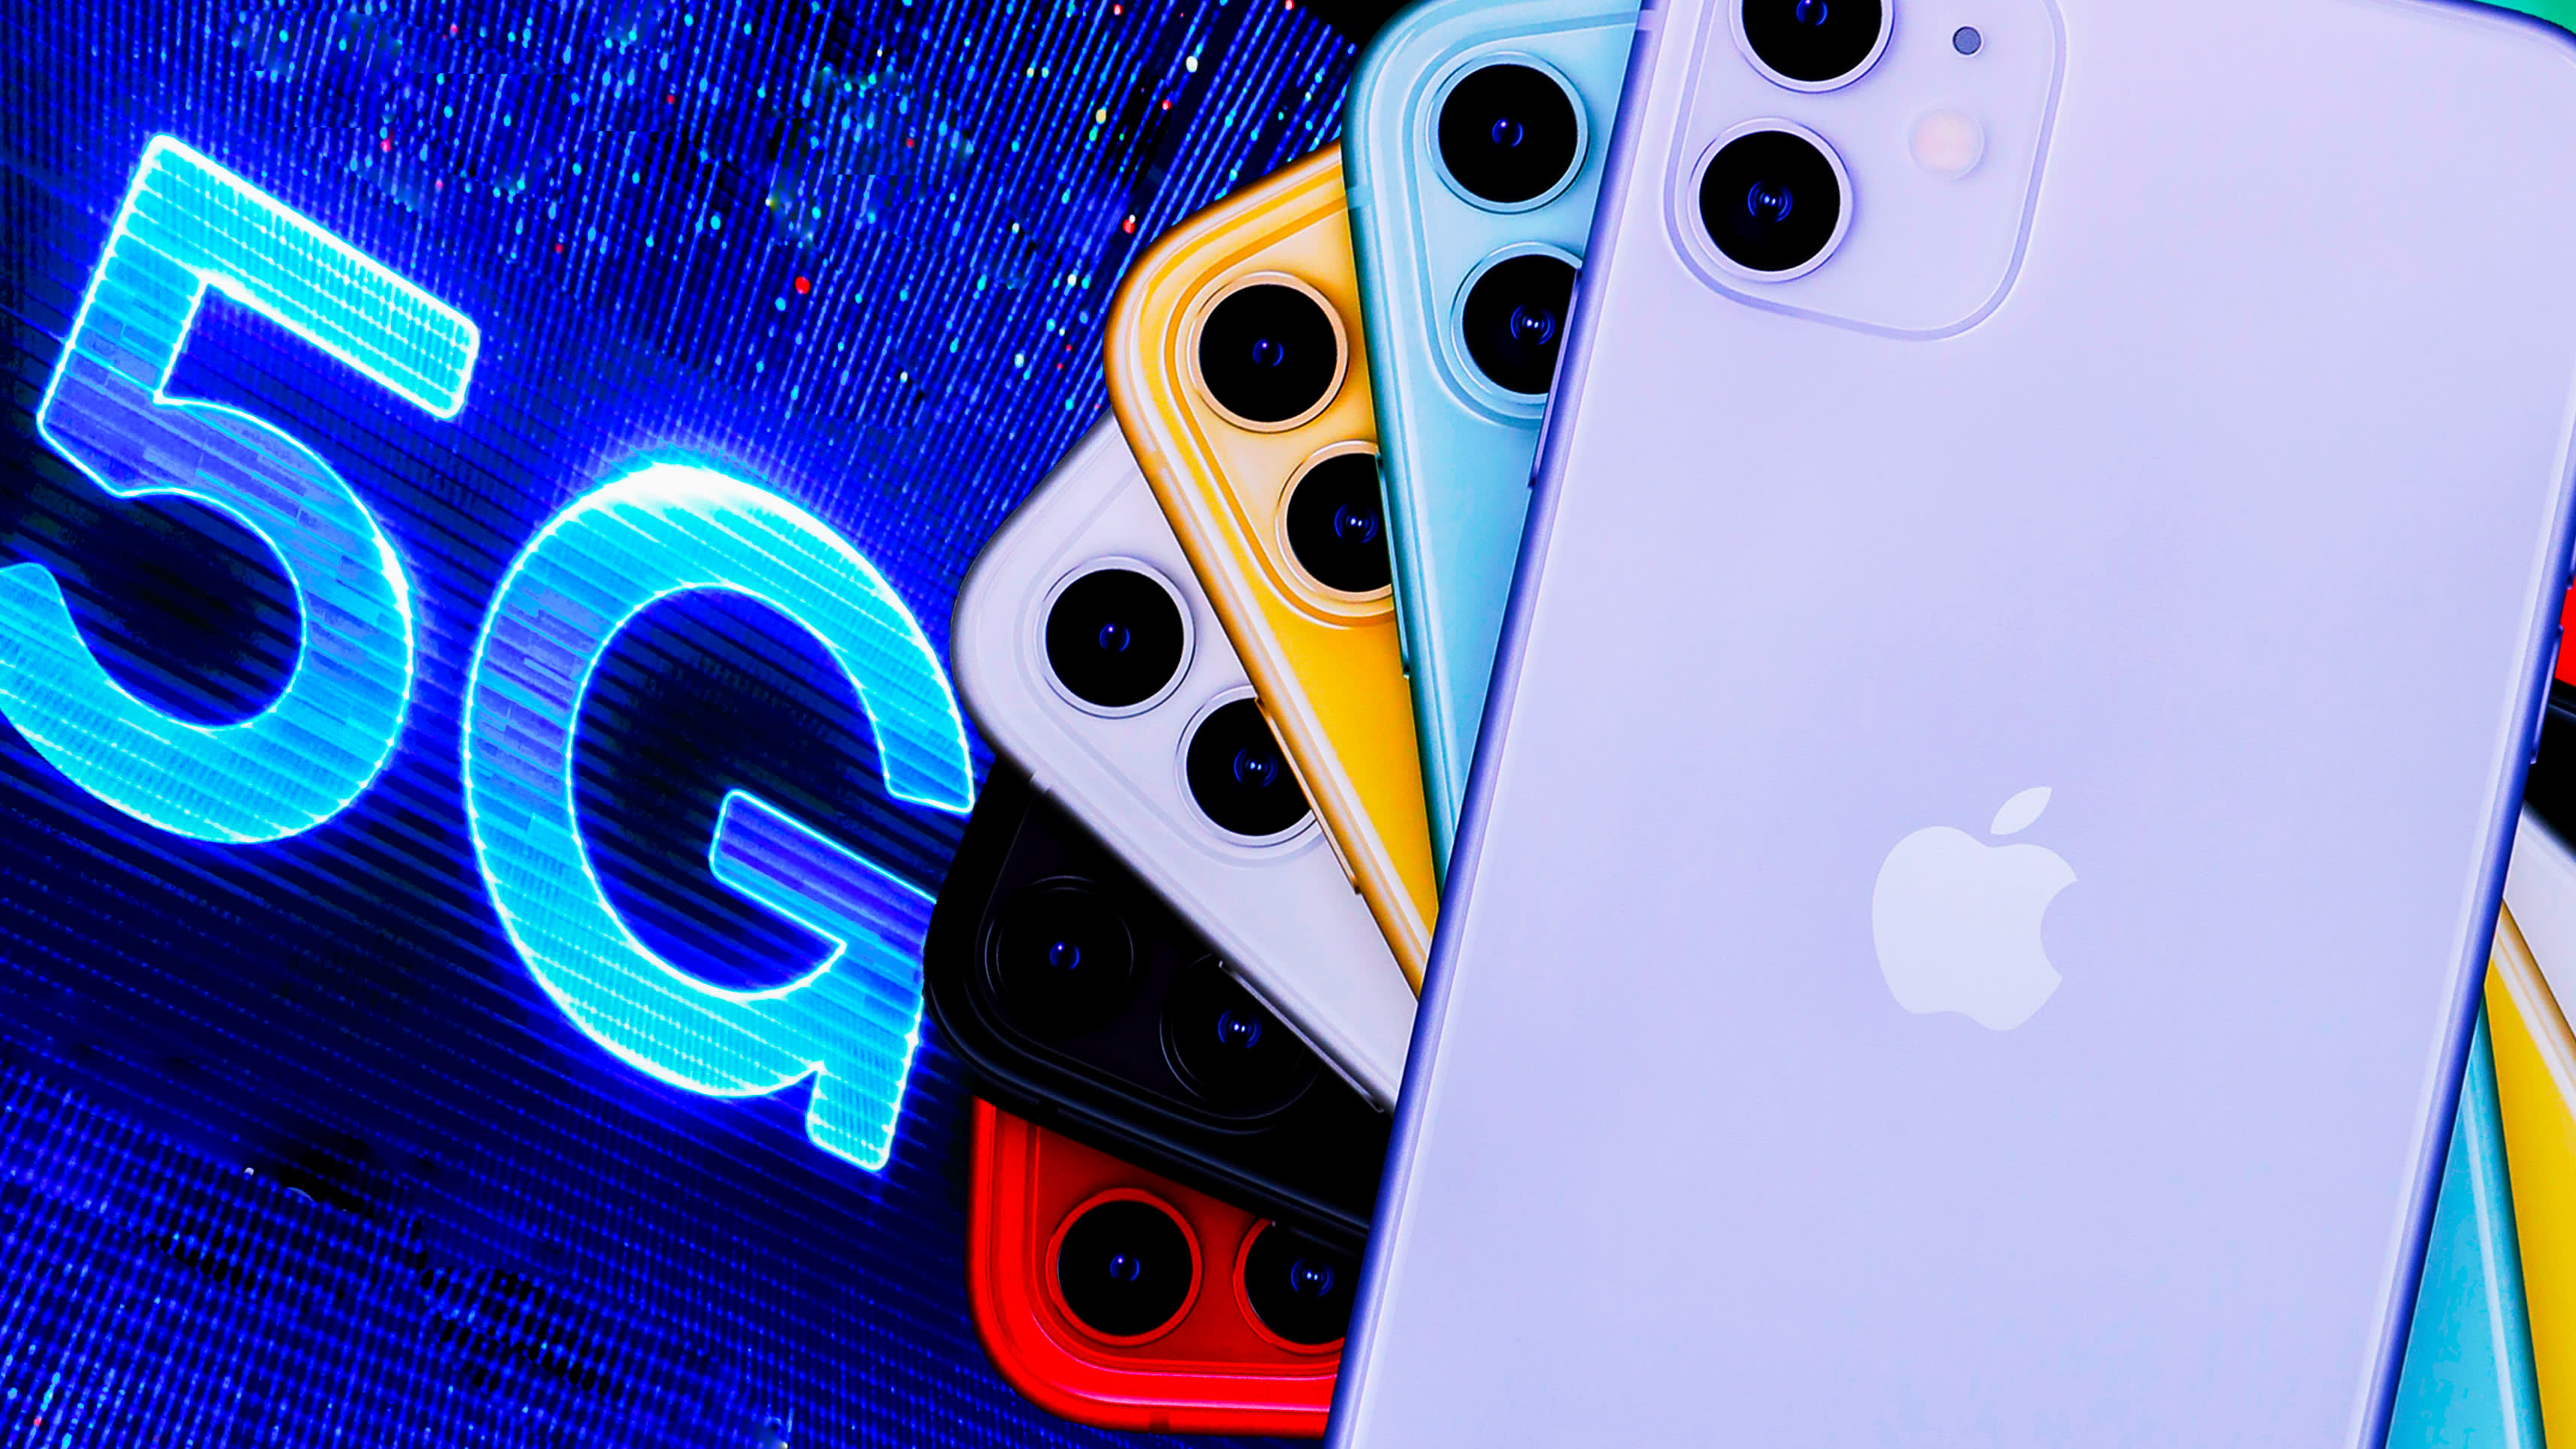 Apple shakes off iPhone slump to deliver strong fiscal 4Q